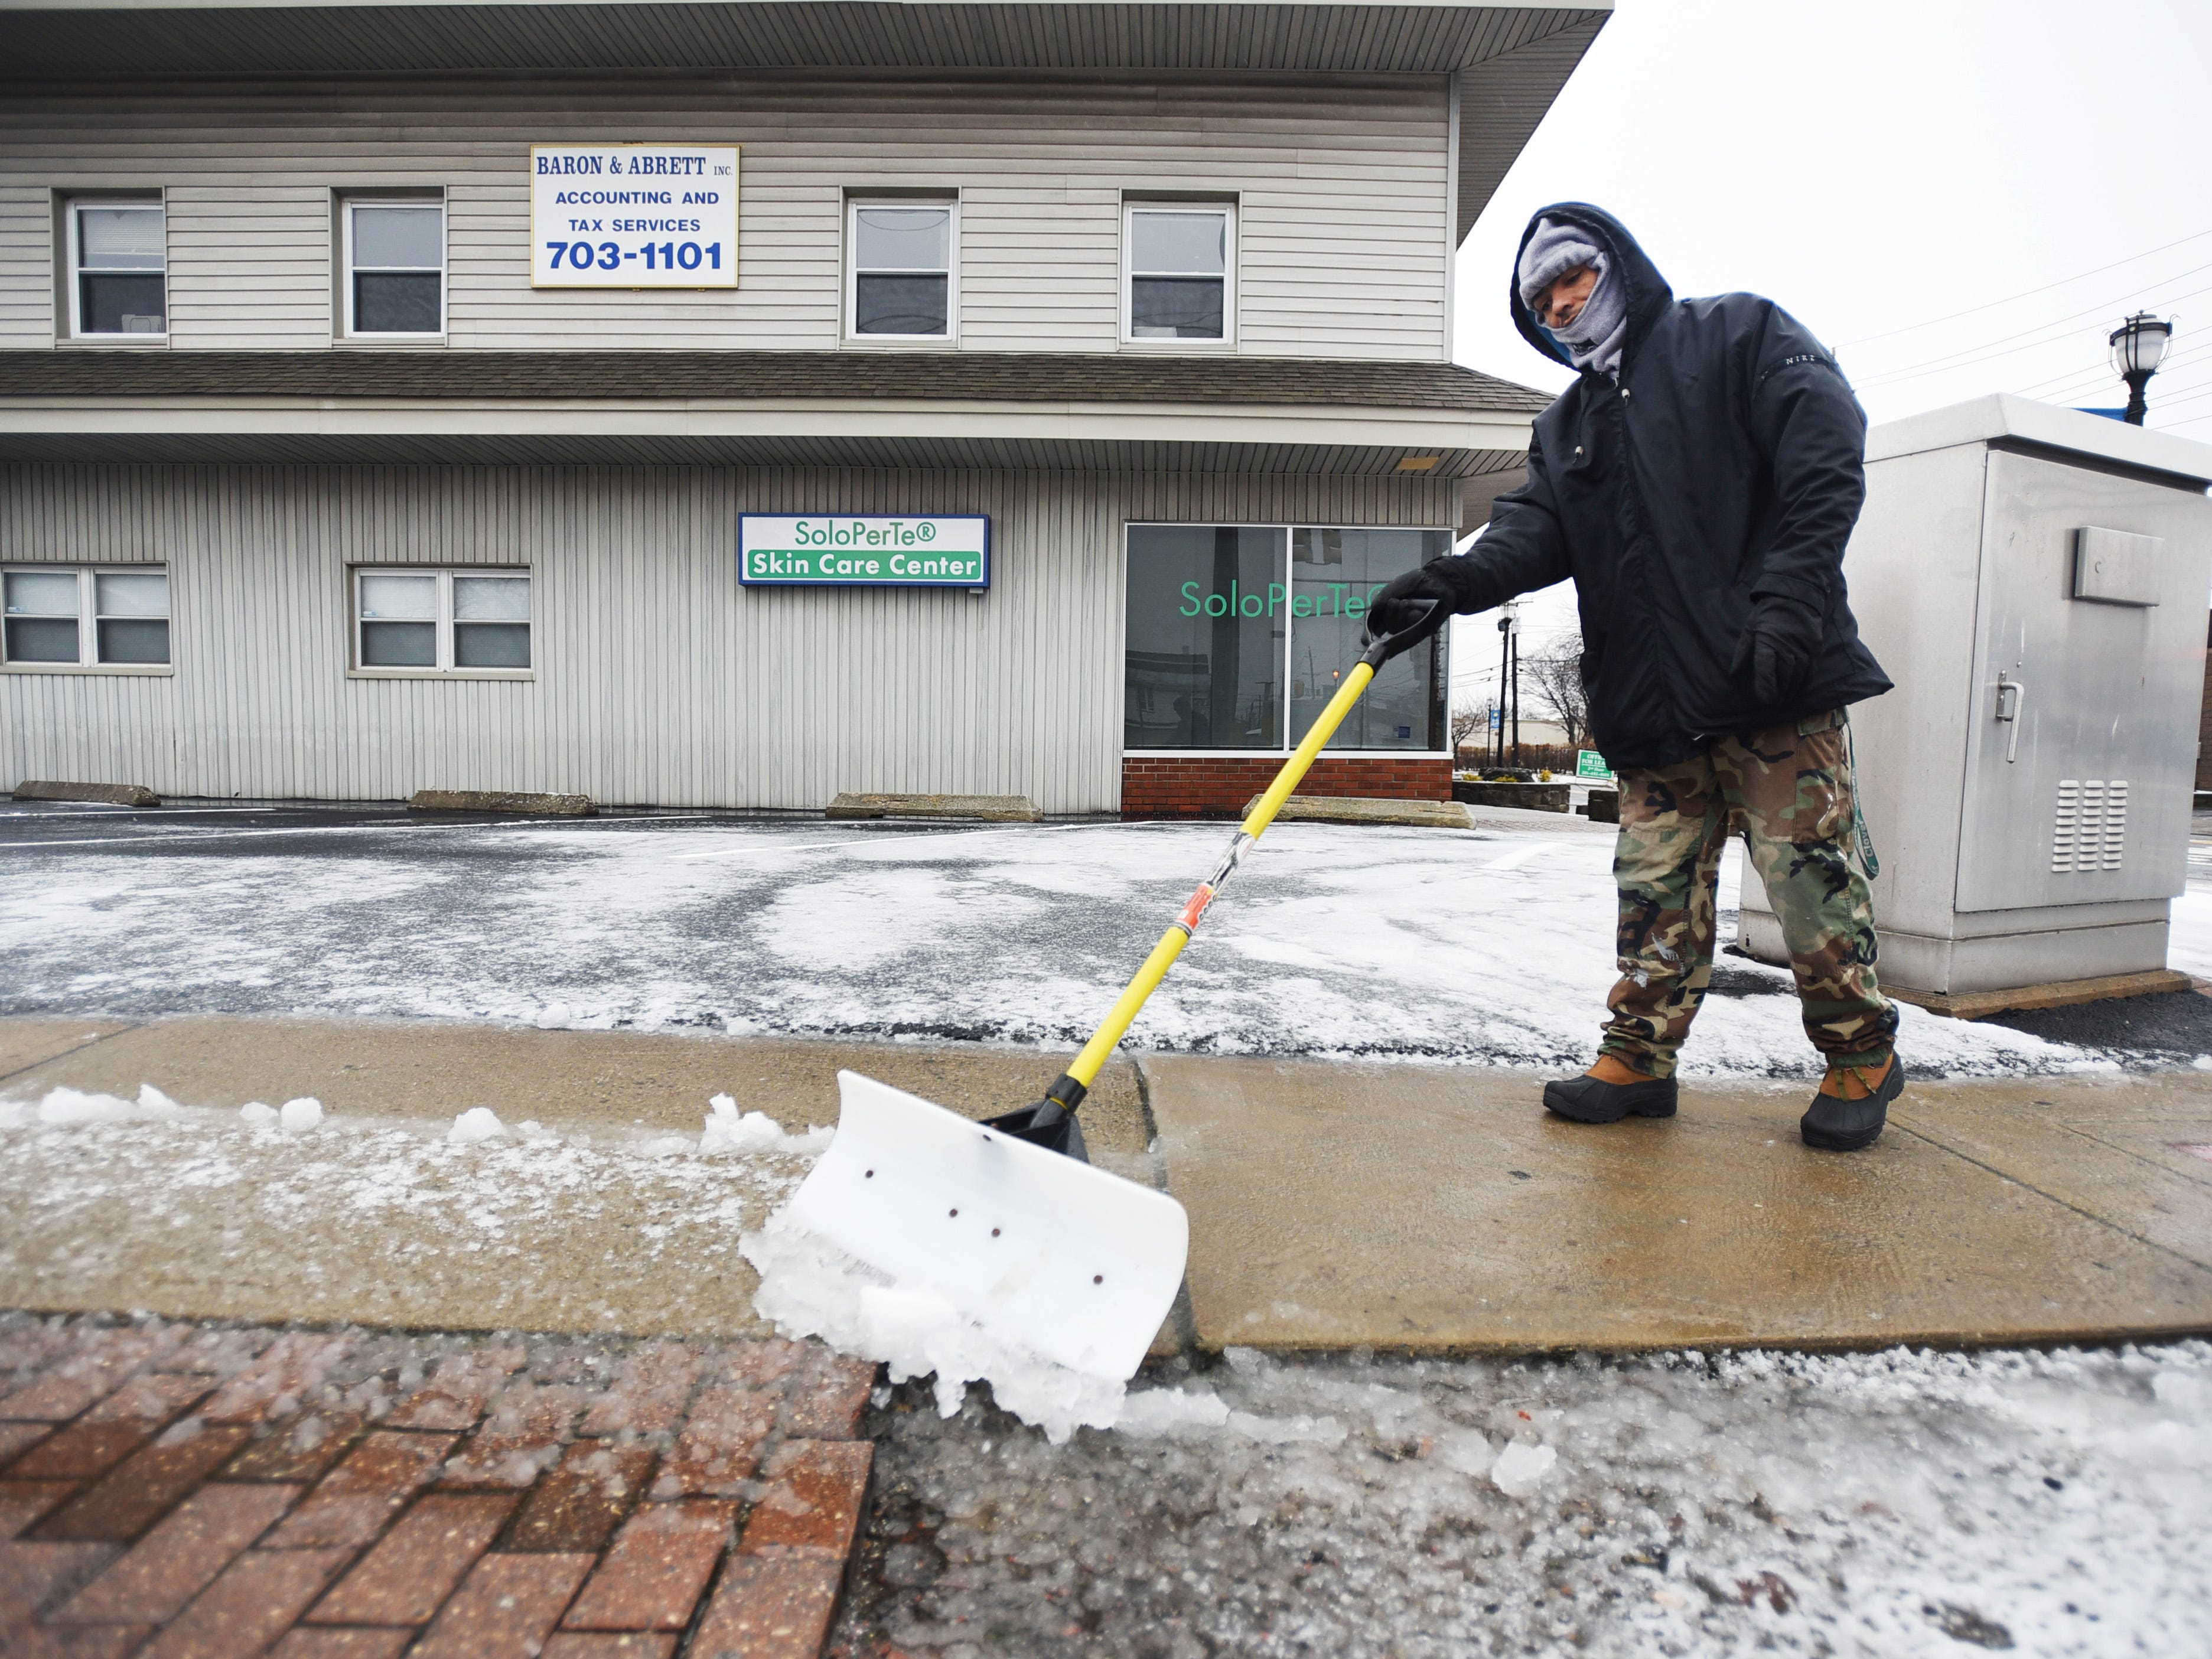 Jose Bid, a contract worker removes the snow in front of a store along Fair Lawn Avenue on Sunday morning in Fair Lawn, NJ on 01/20/19.